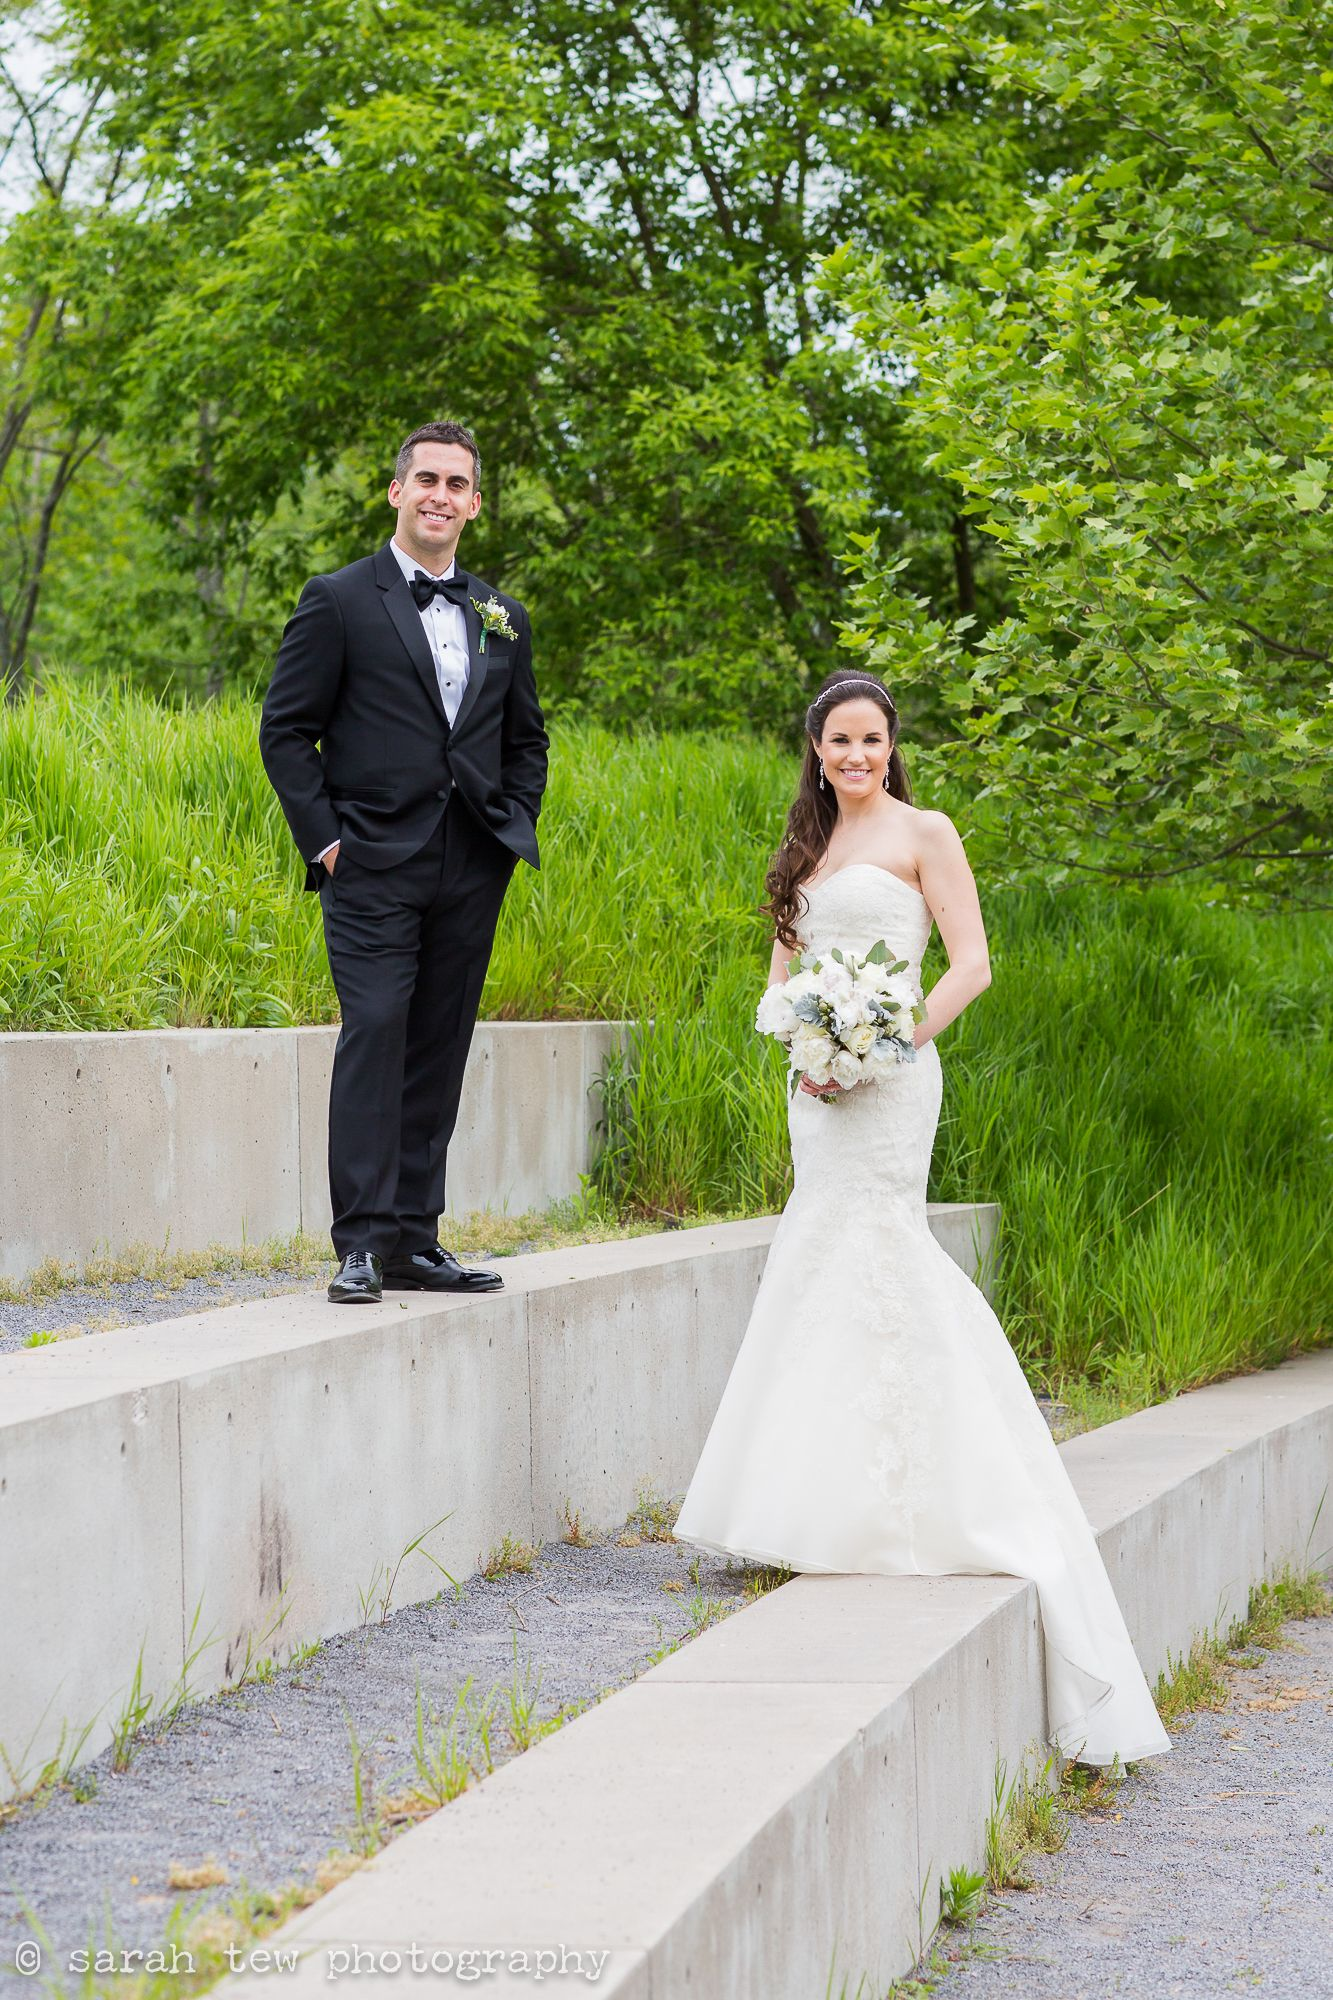 May Wedding at The Roundhouse at Beacon Falls © Sarah Tew Photography @rhbeacon, @exquisitebride, @colehaan, @ericamua, @dessygroup, @TheBlackTux,